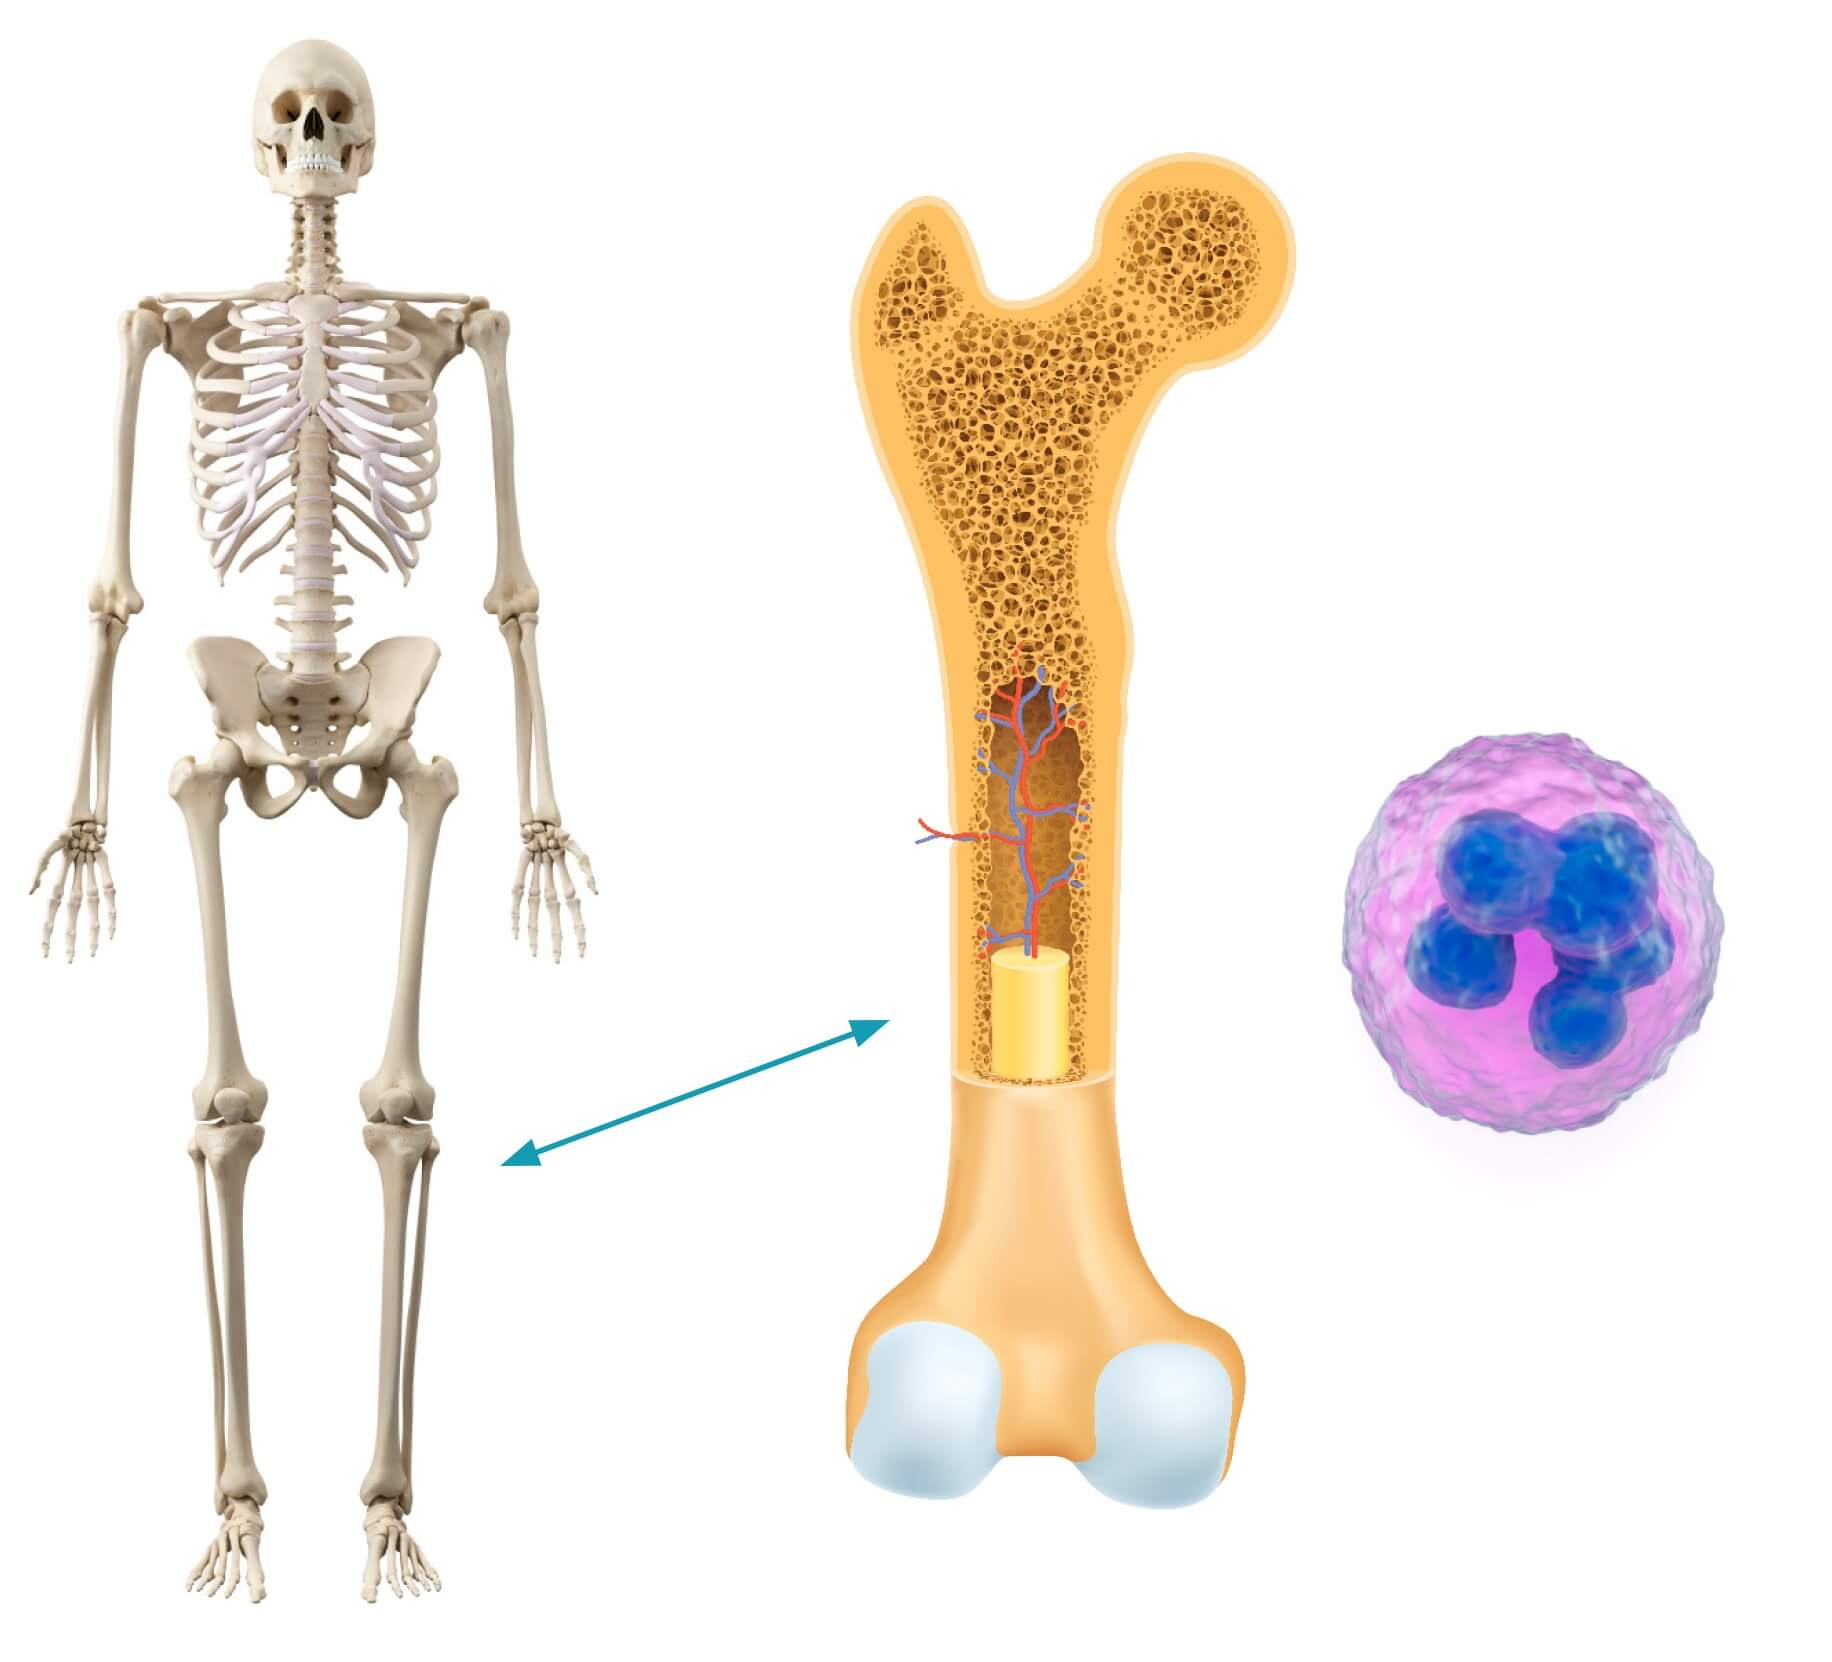 Cancer-fighting immune cells are made by our bone marrow and can be collected and used for therapy.